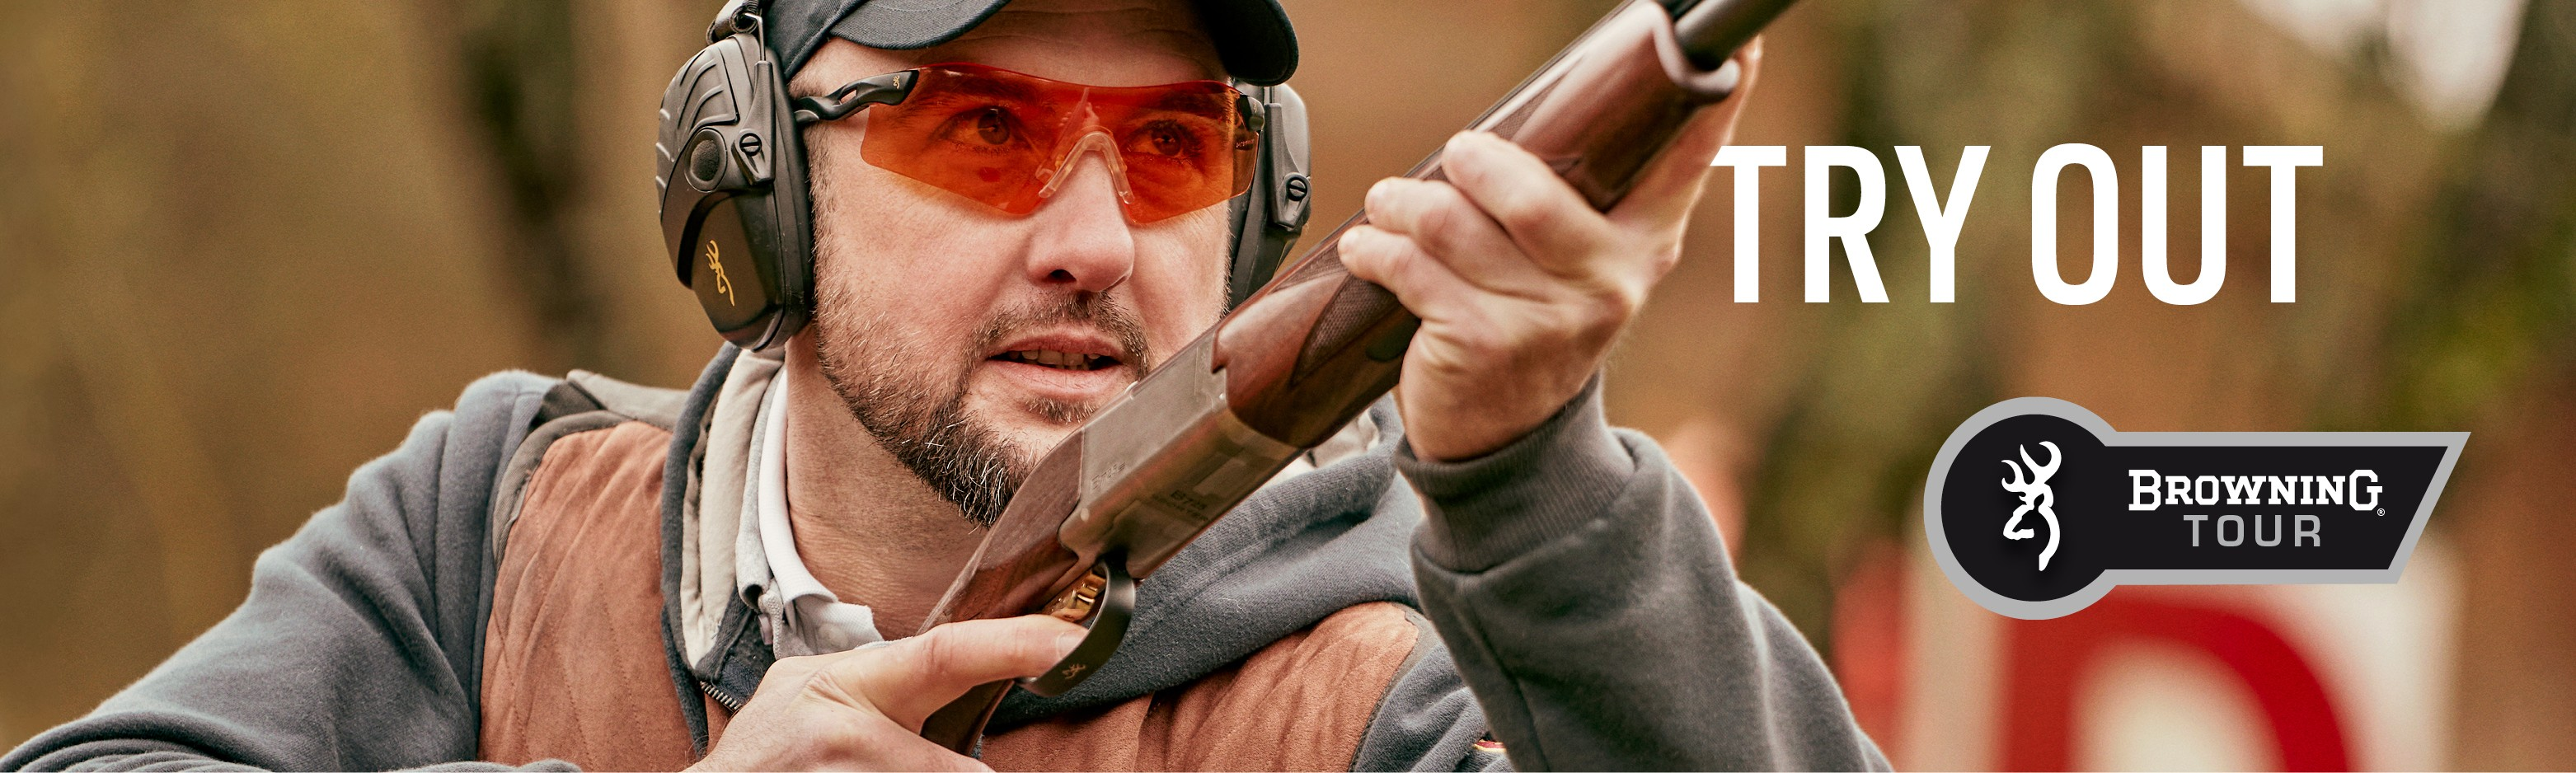 Browning UK Tour Comes to Bywell